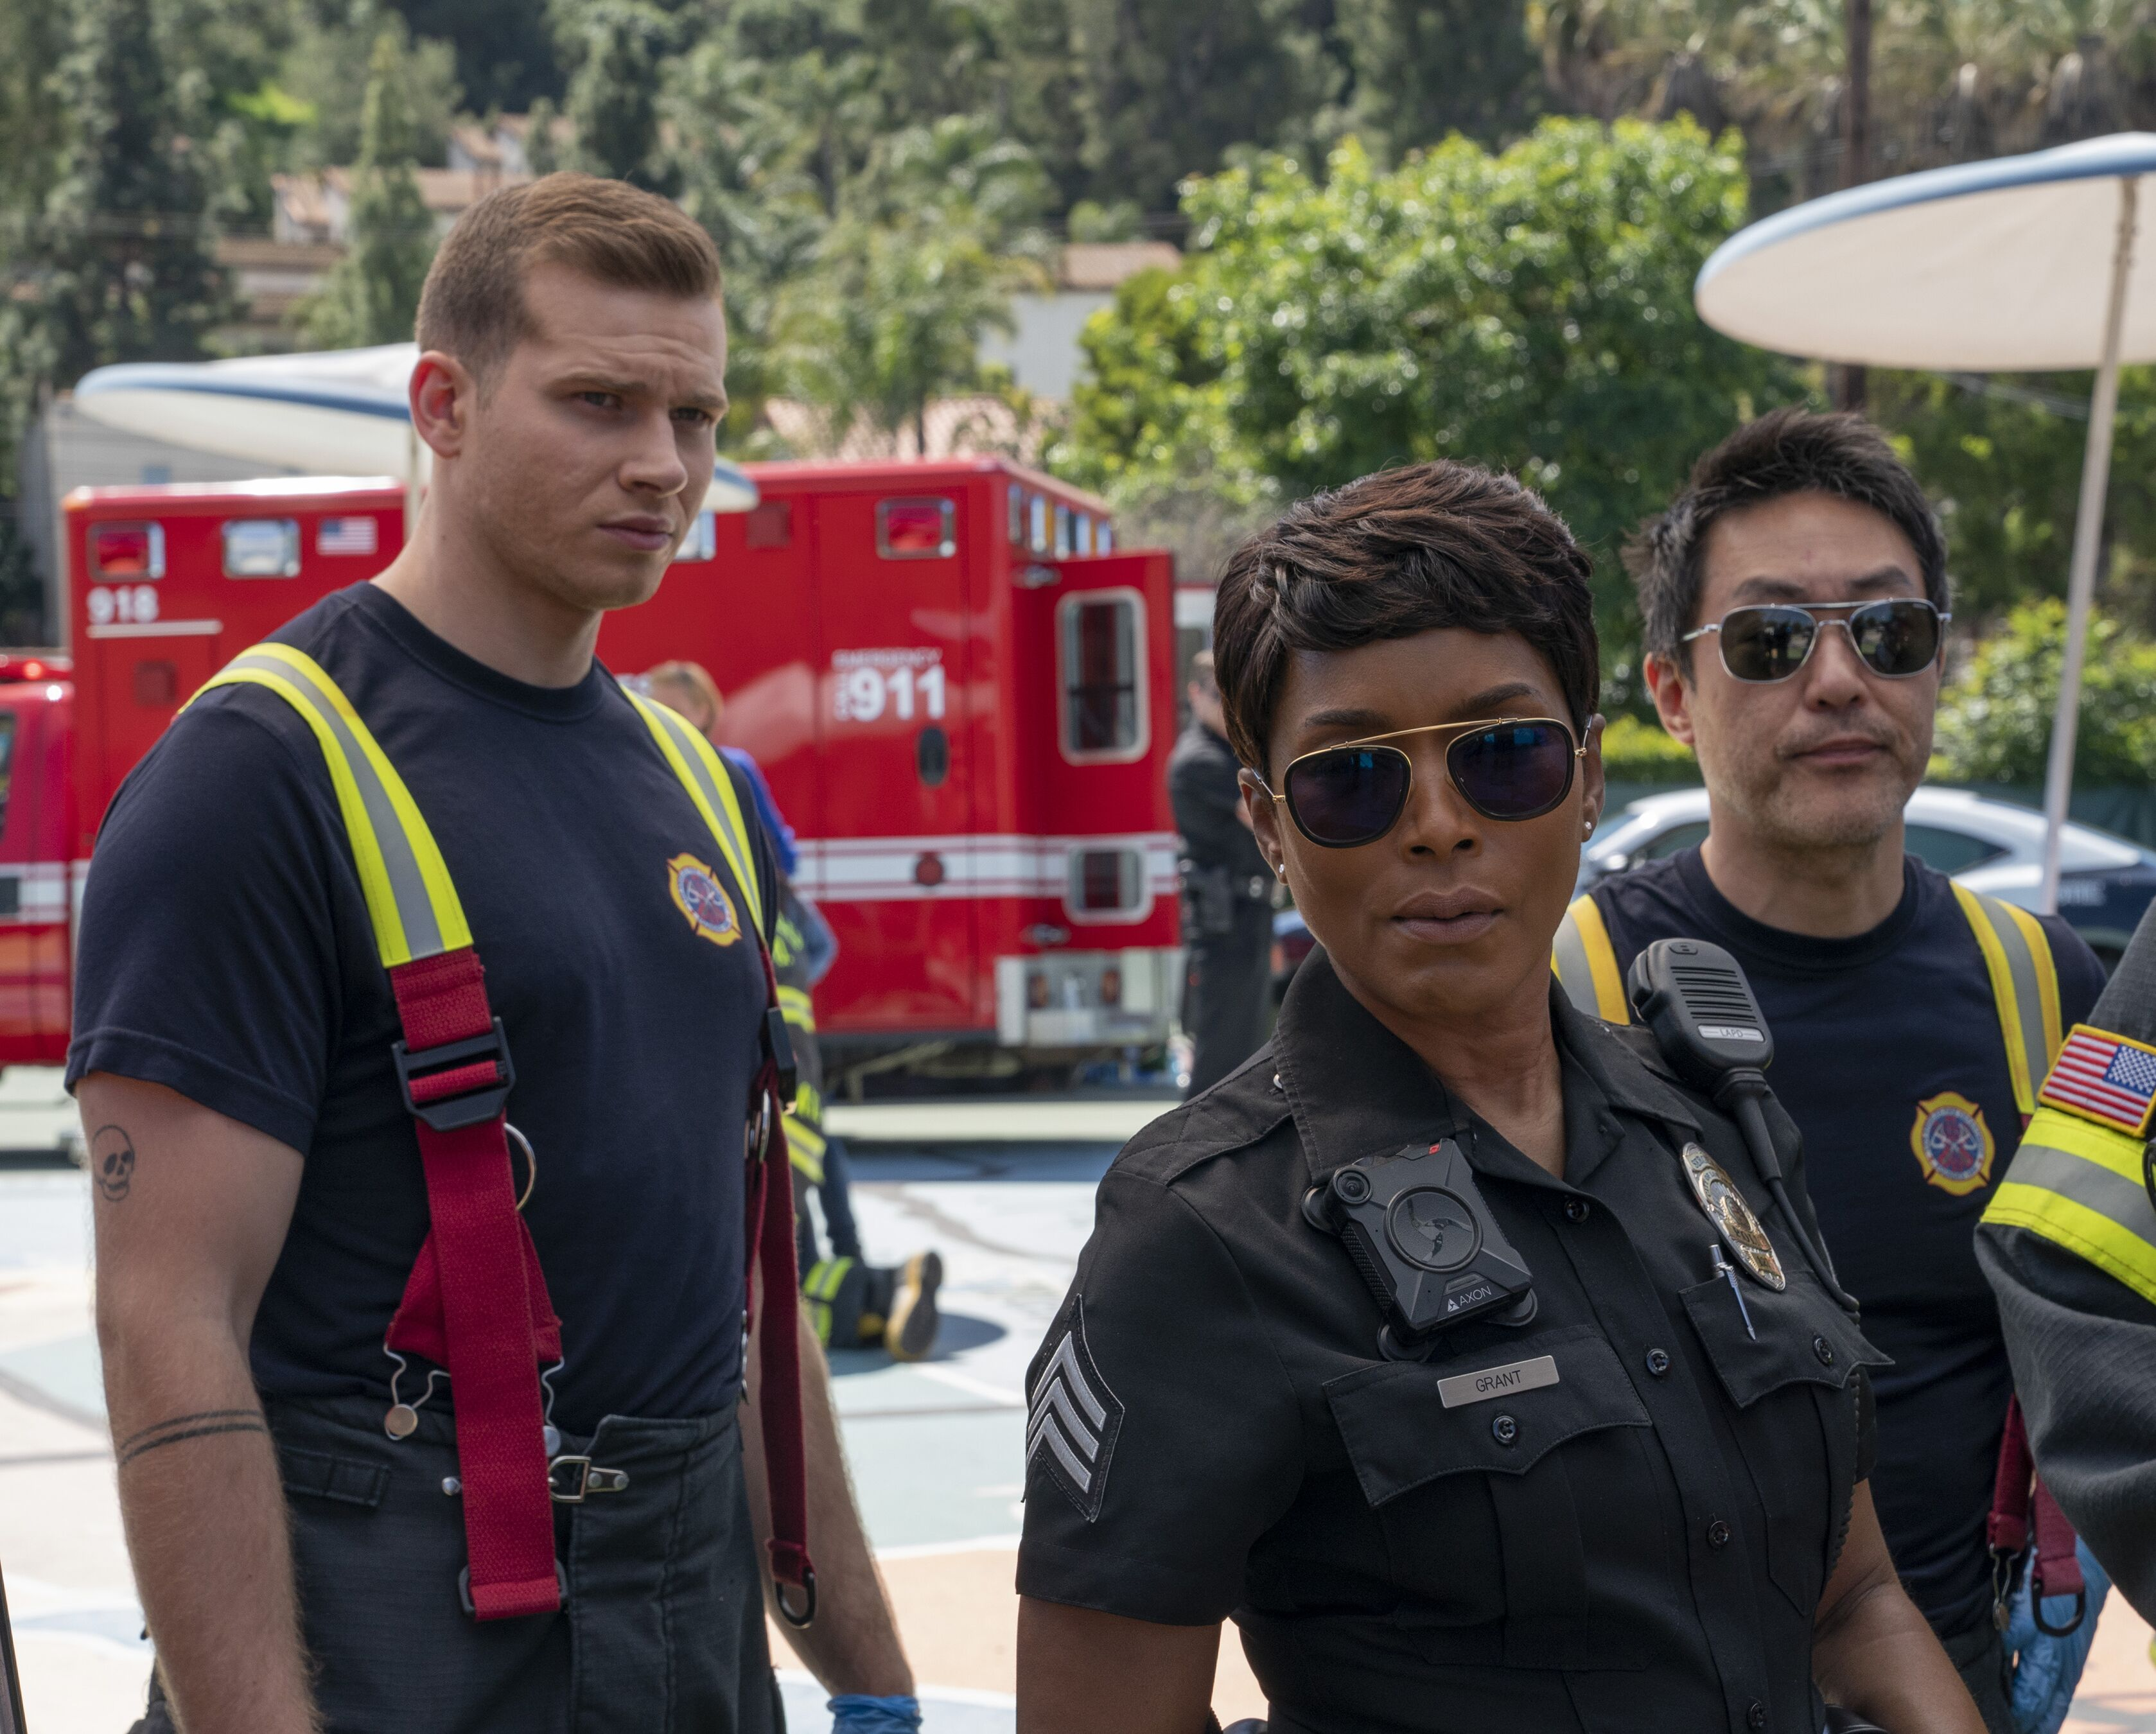 Everything we know about 9-1-1 Season 3 so far